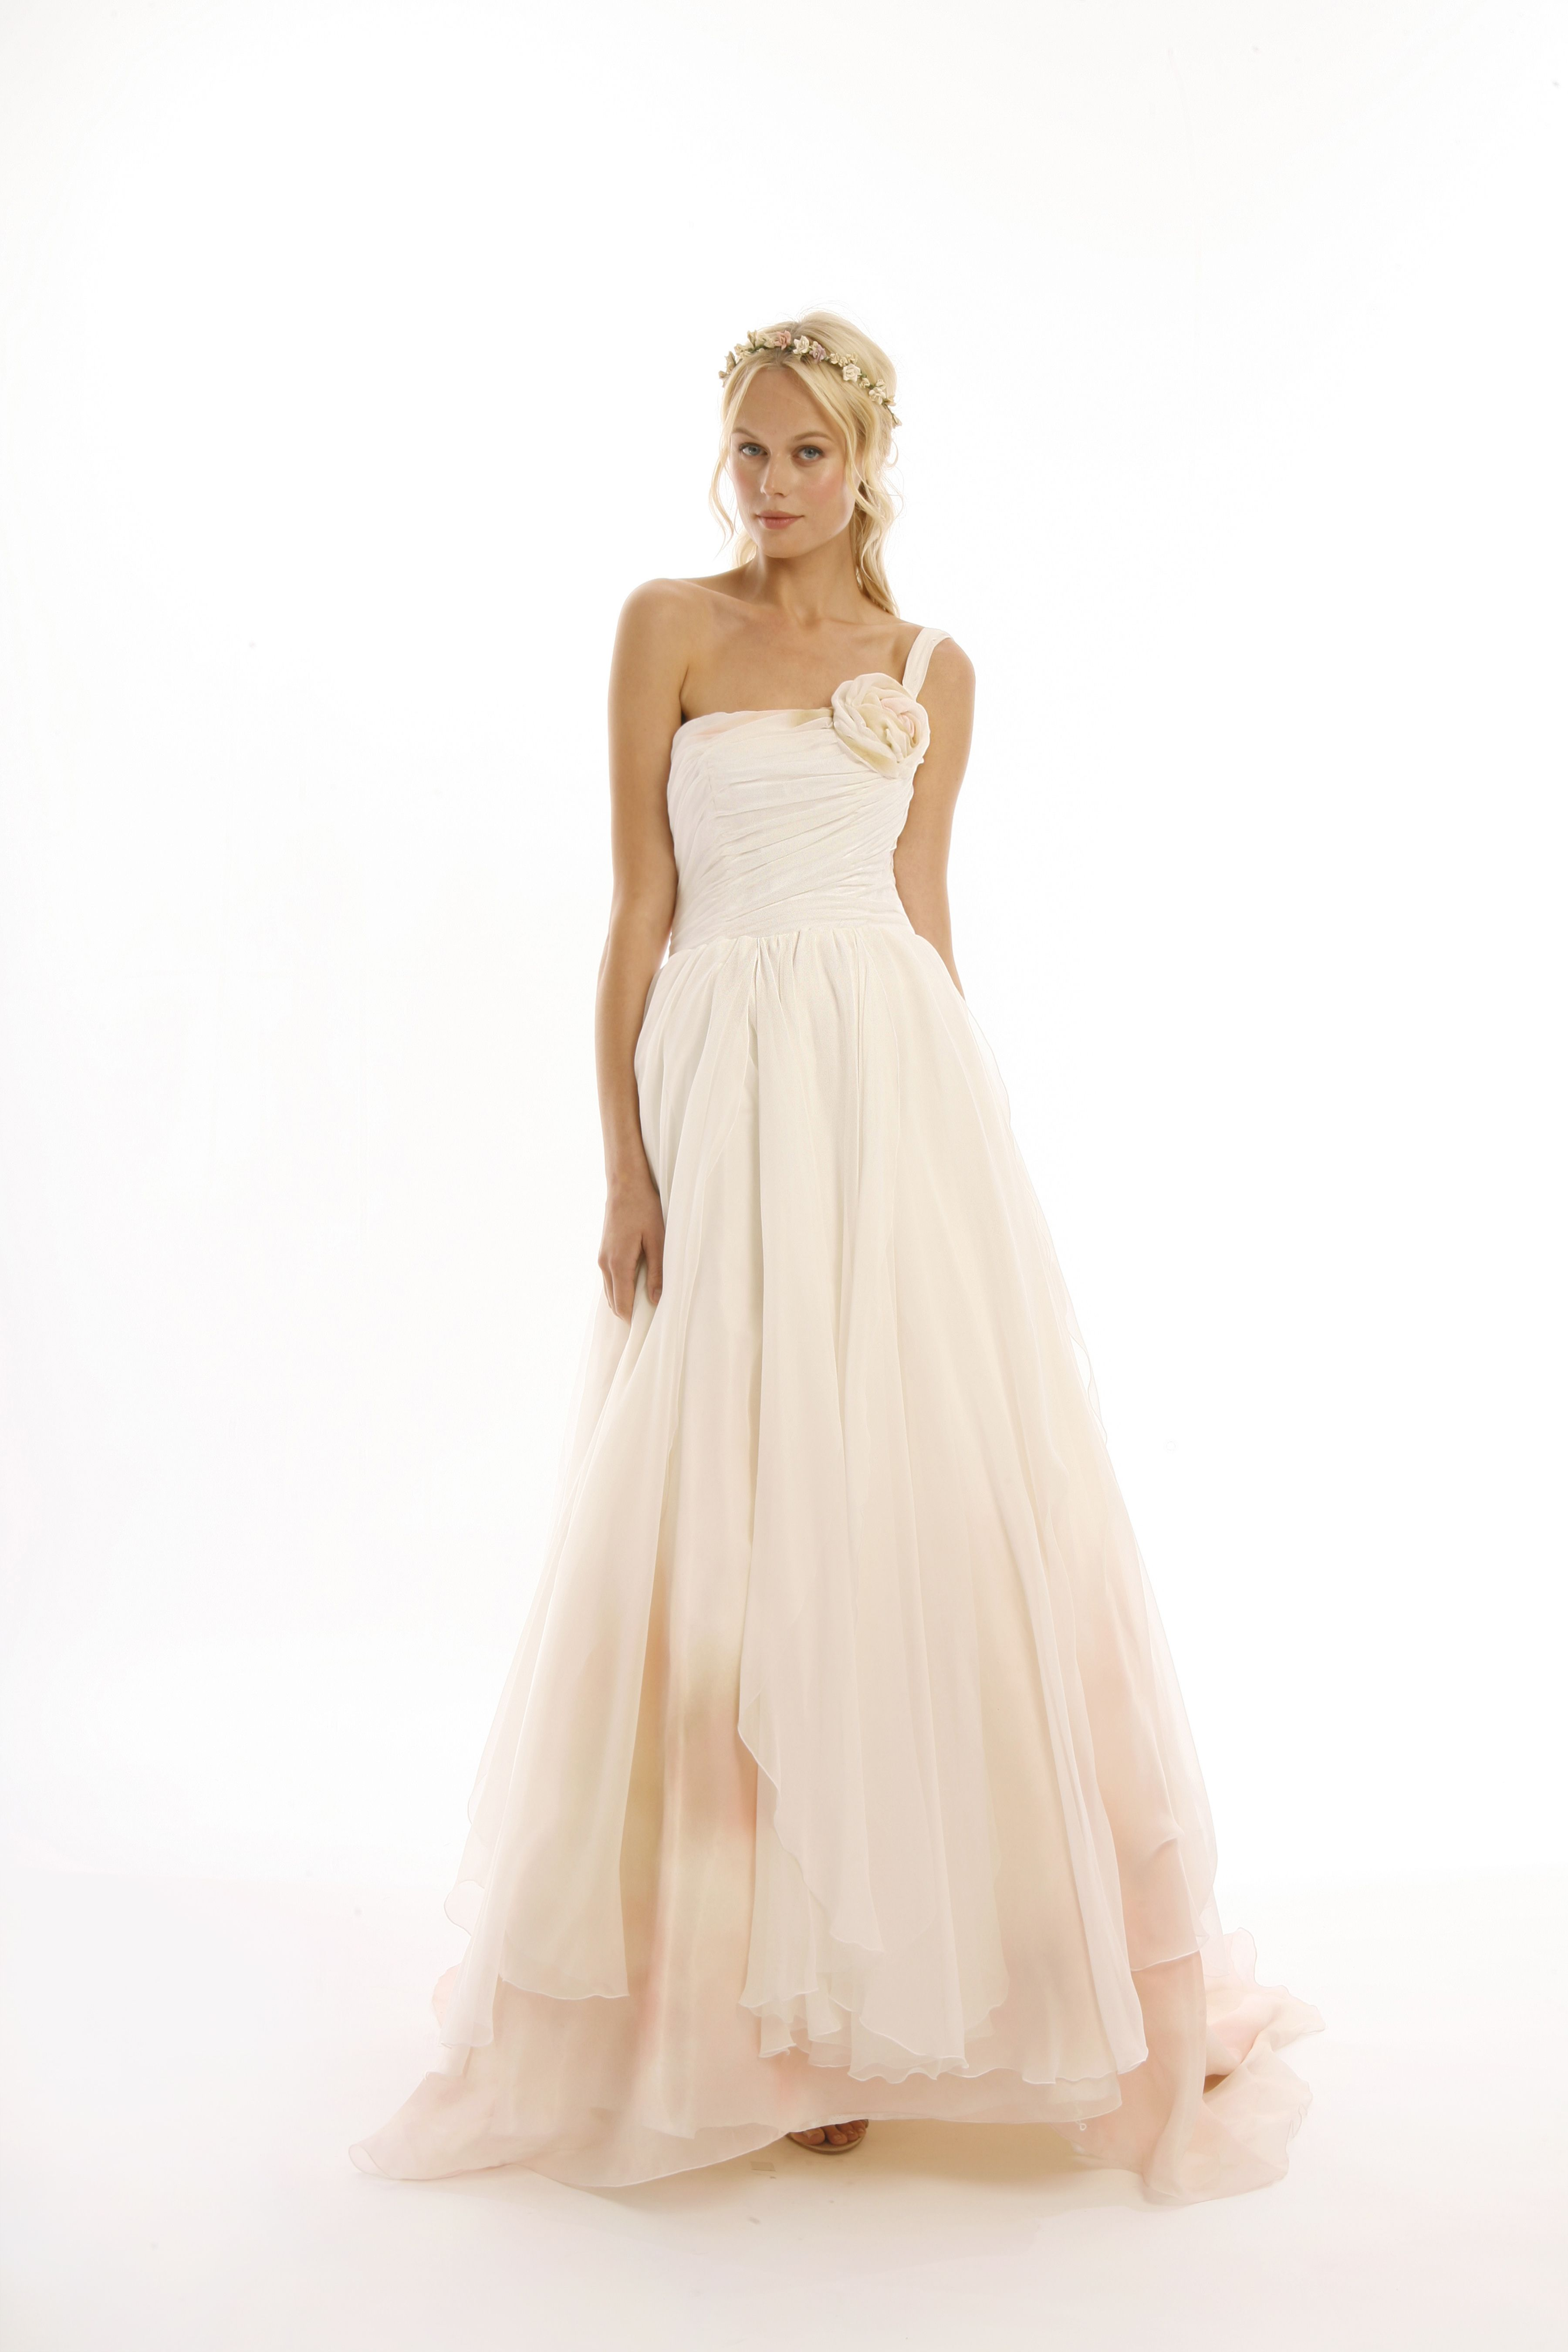 Joy Collection By Eugenia Couture Style Miranda Blush Dipped Silk Chiffon A Line Gown With Soft Flowing Skirt And Shirred One Shoulder Bodice